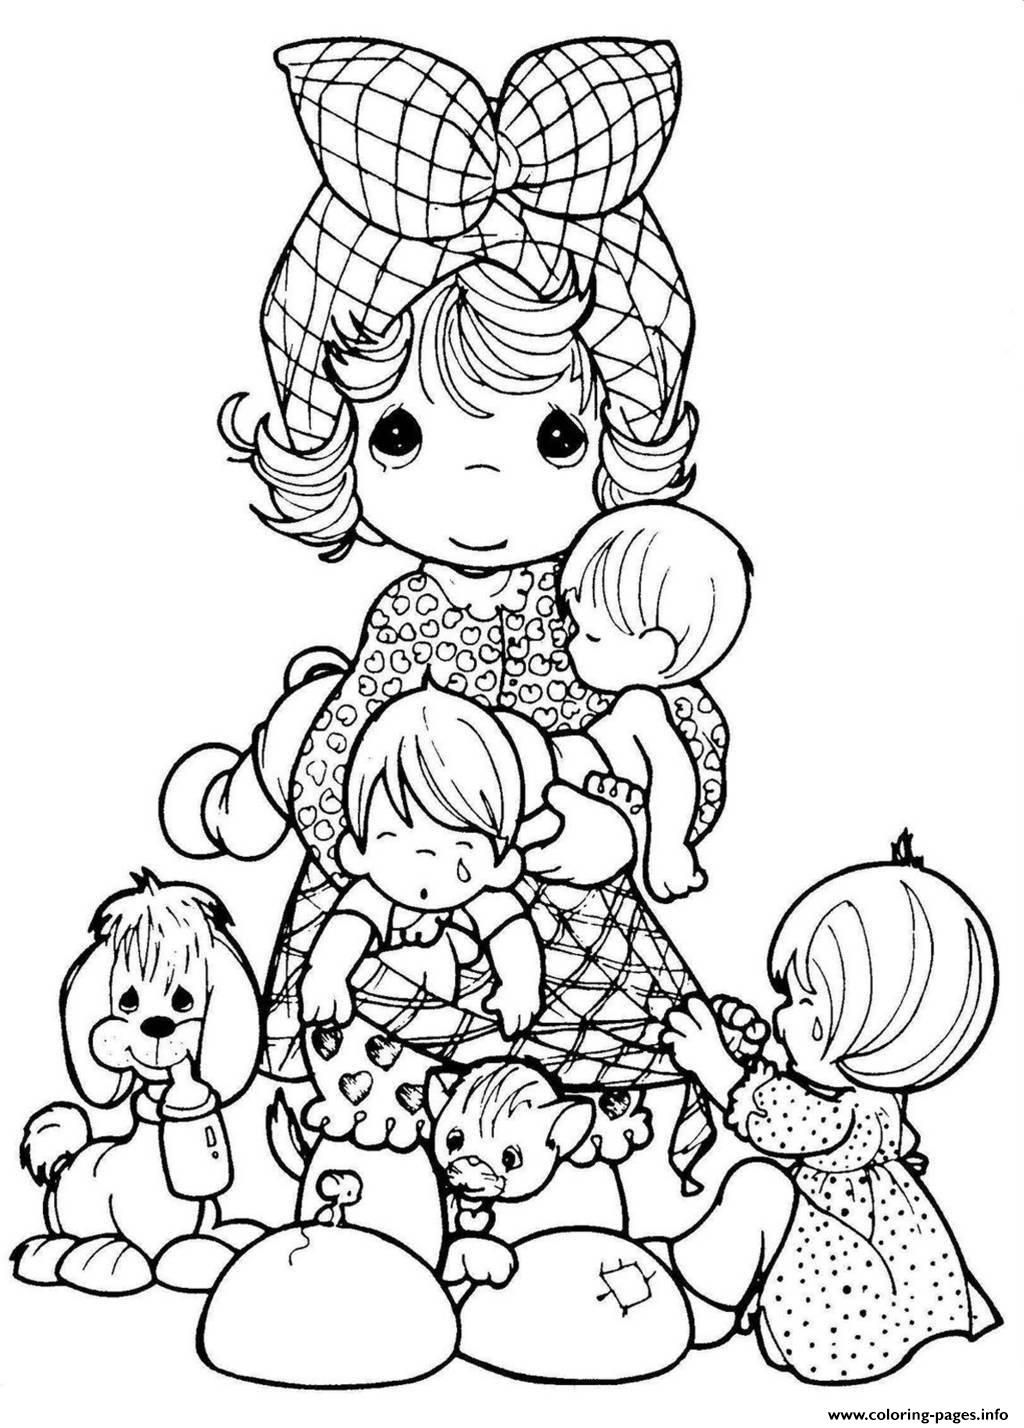 Print adult precious moments coloring pages | color | Pinterest ...